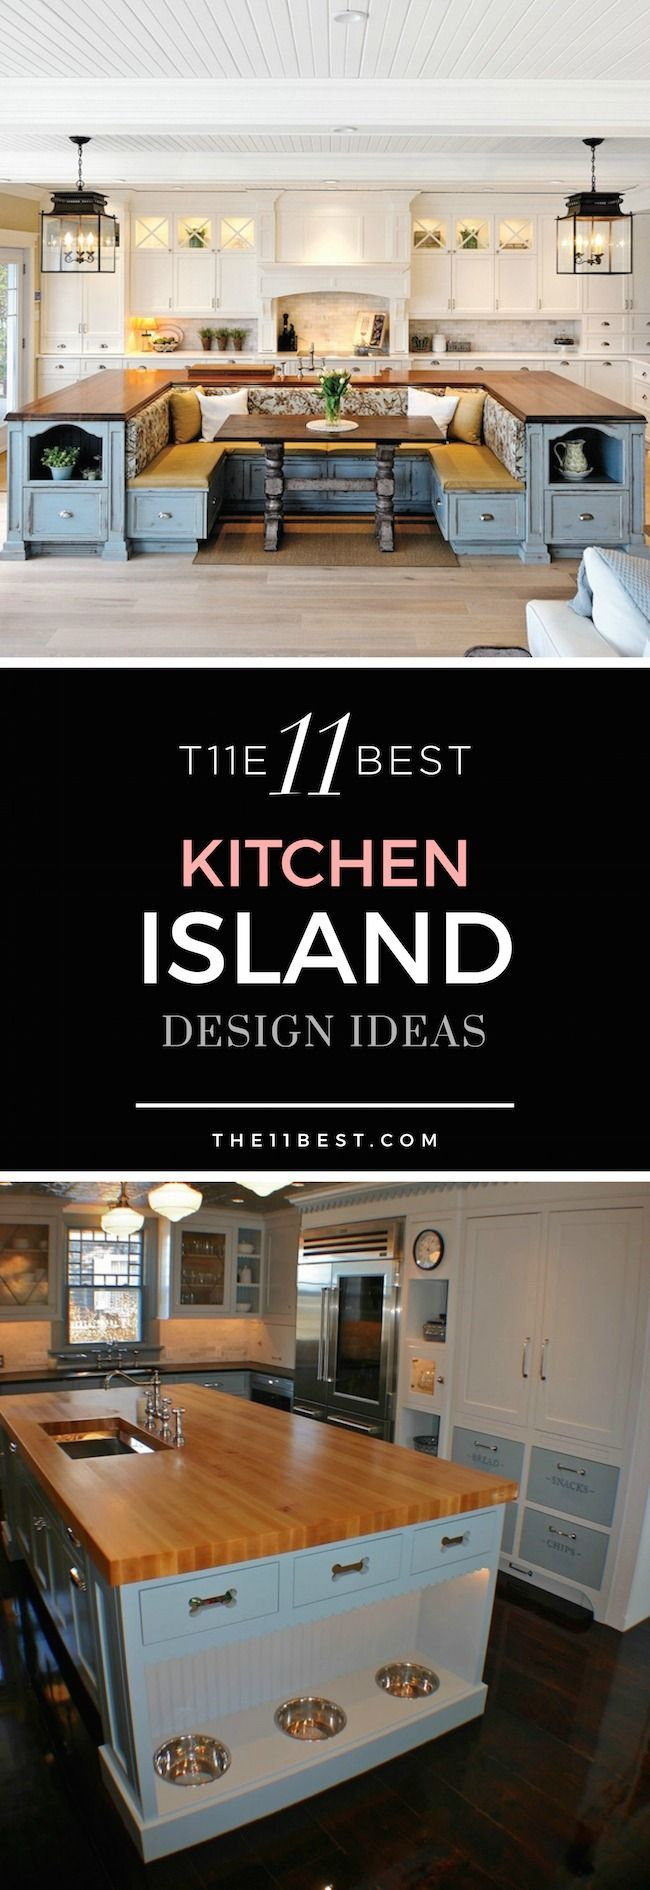 The 11 Best Kitchen Islands | The Eleven Best - http://centophobe.com/the-11-best-kitchen-islands-the-eleven-best-2/